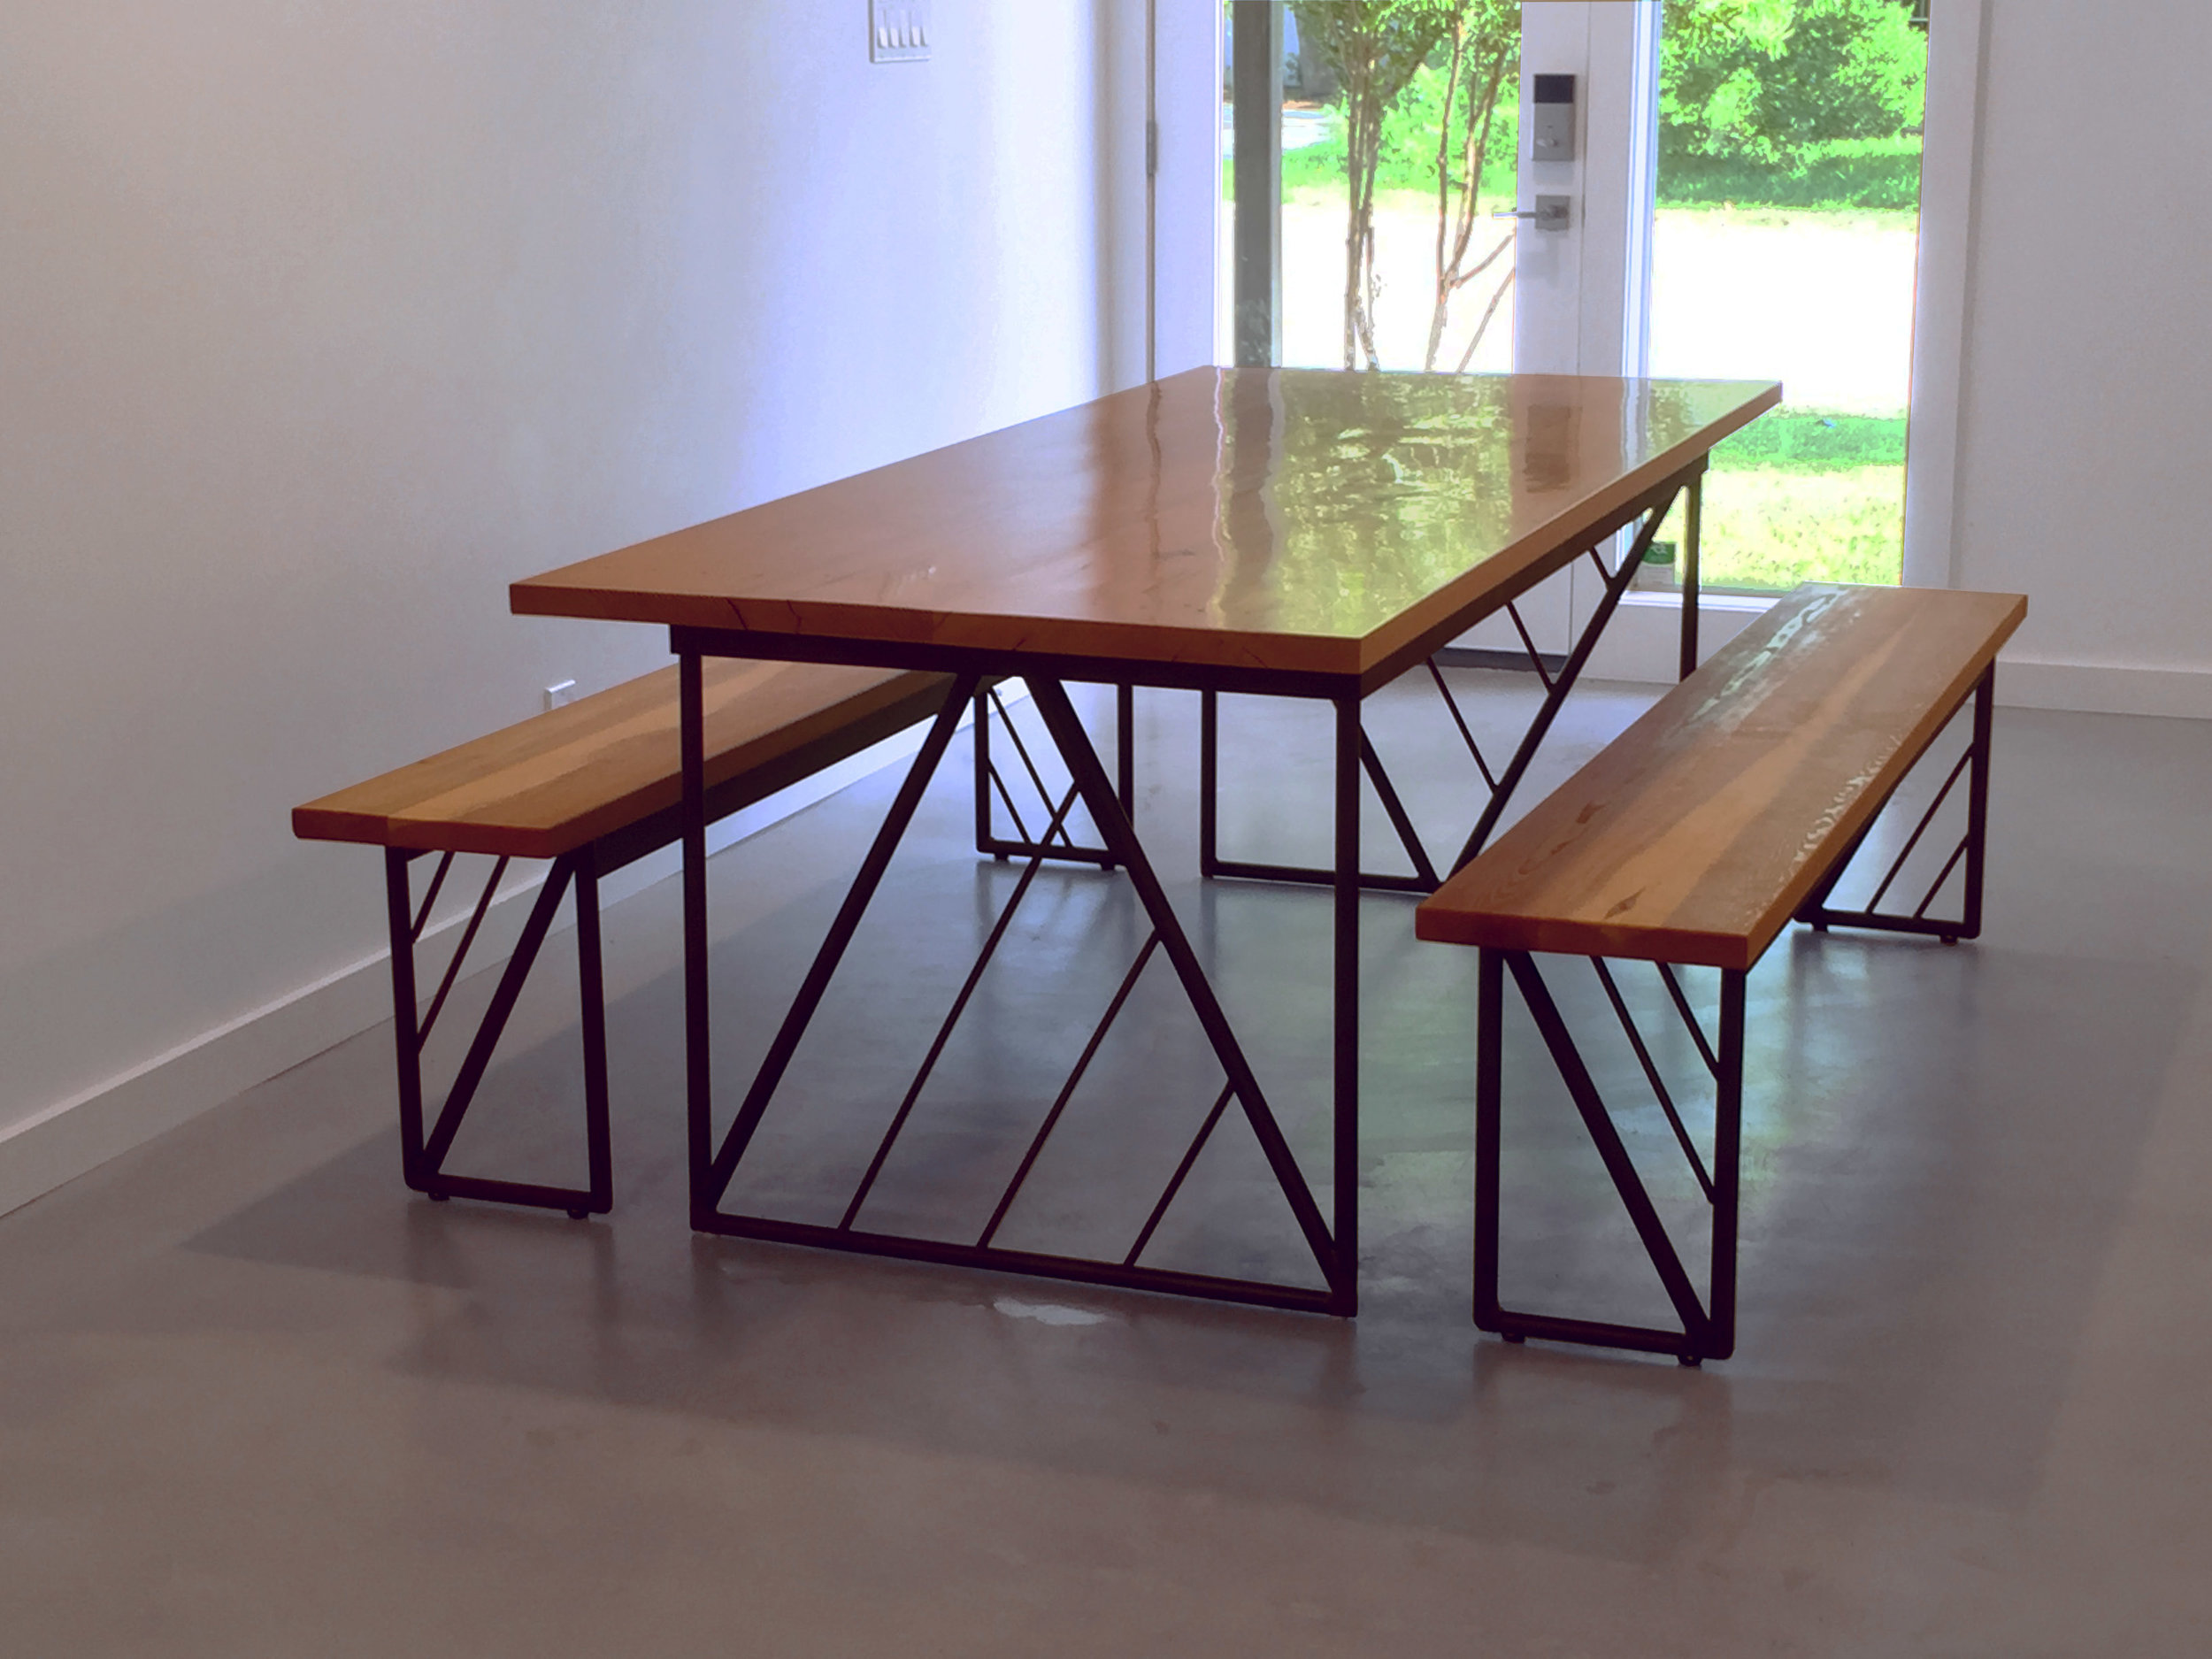 Table + Benches.jpg